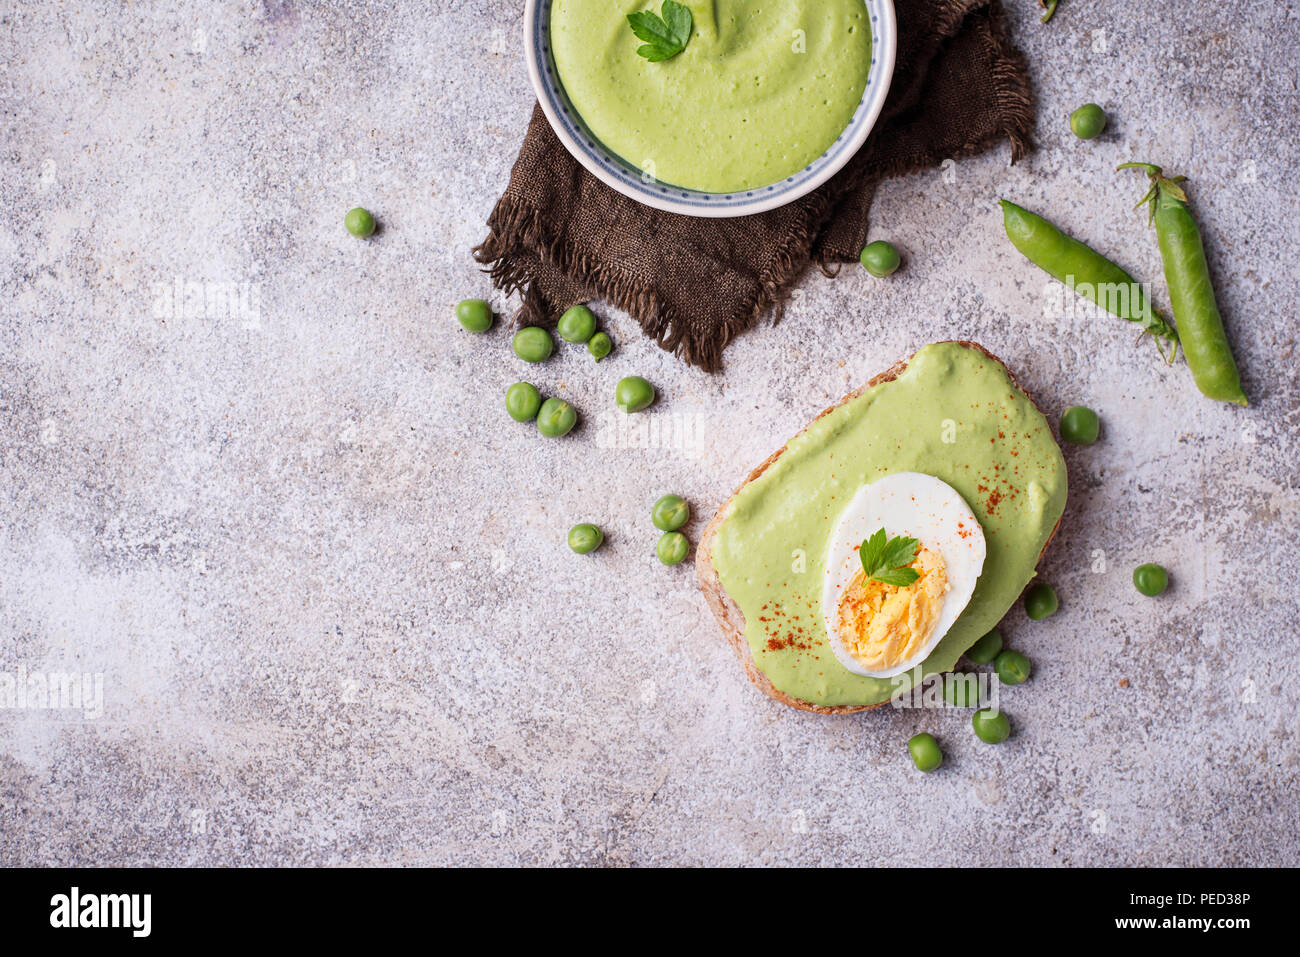 Bruschetta with green peas puree and egg - Stock Image